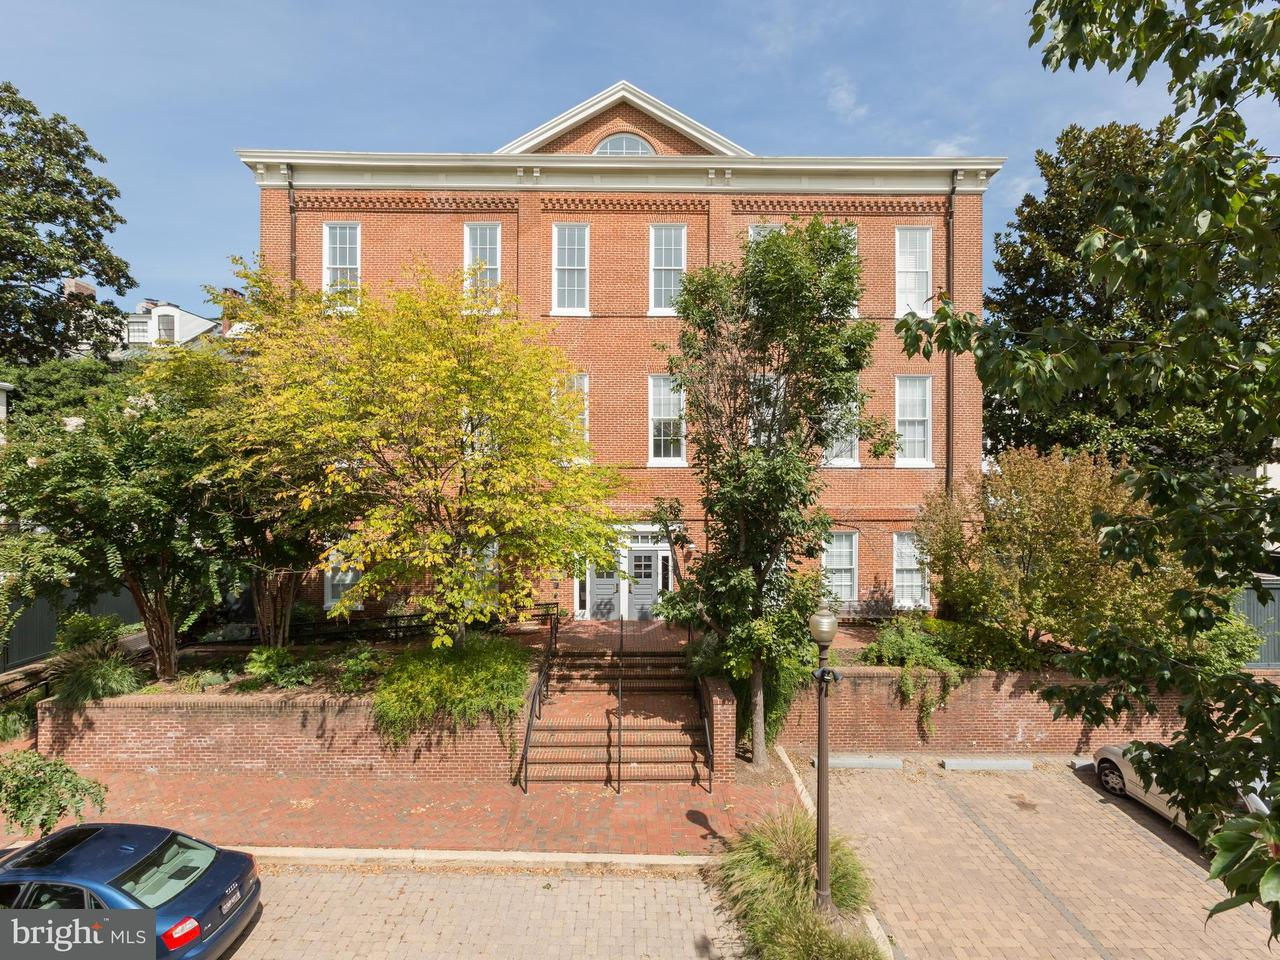 Condominium for Sale at 2735 Olive St NW #2 Washington, District Of Columbia 20007 United States